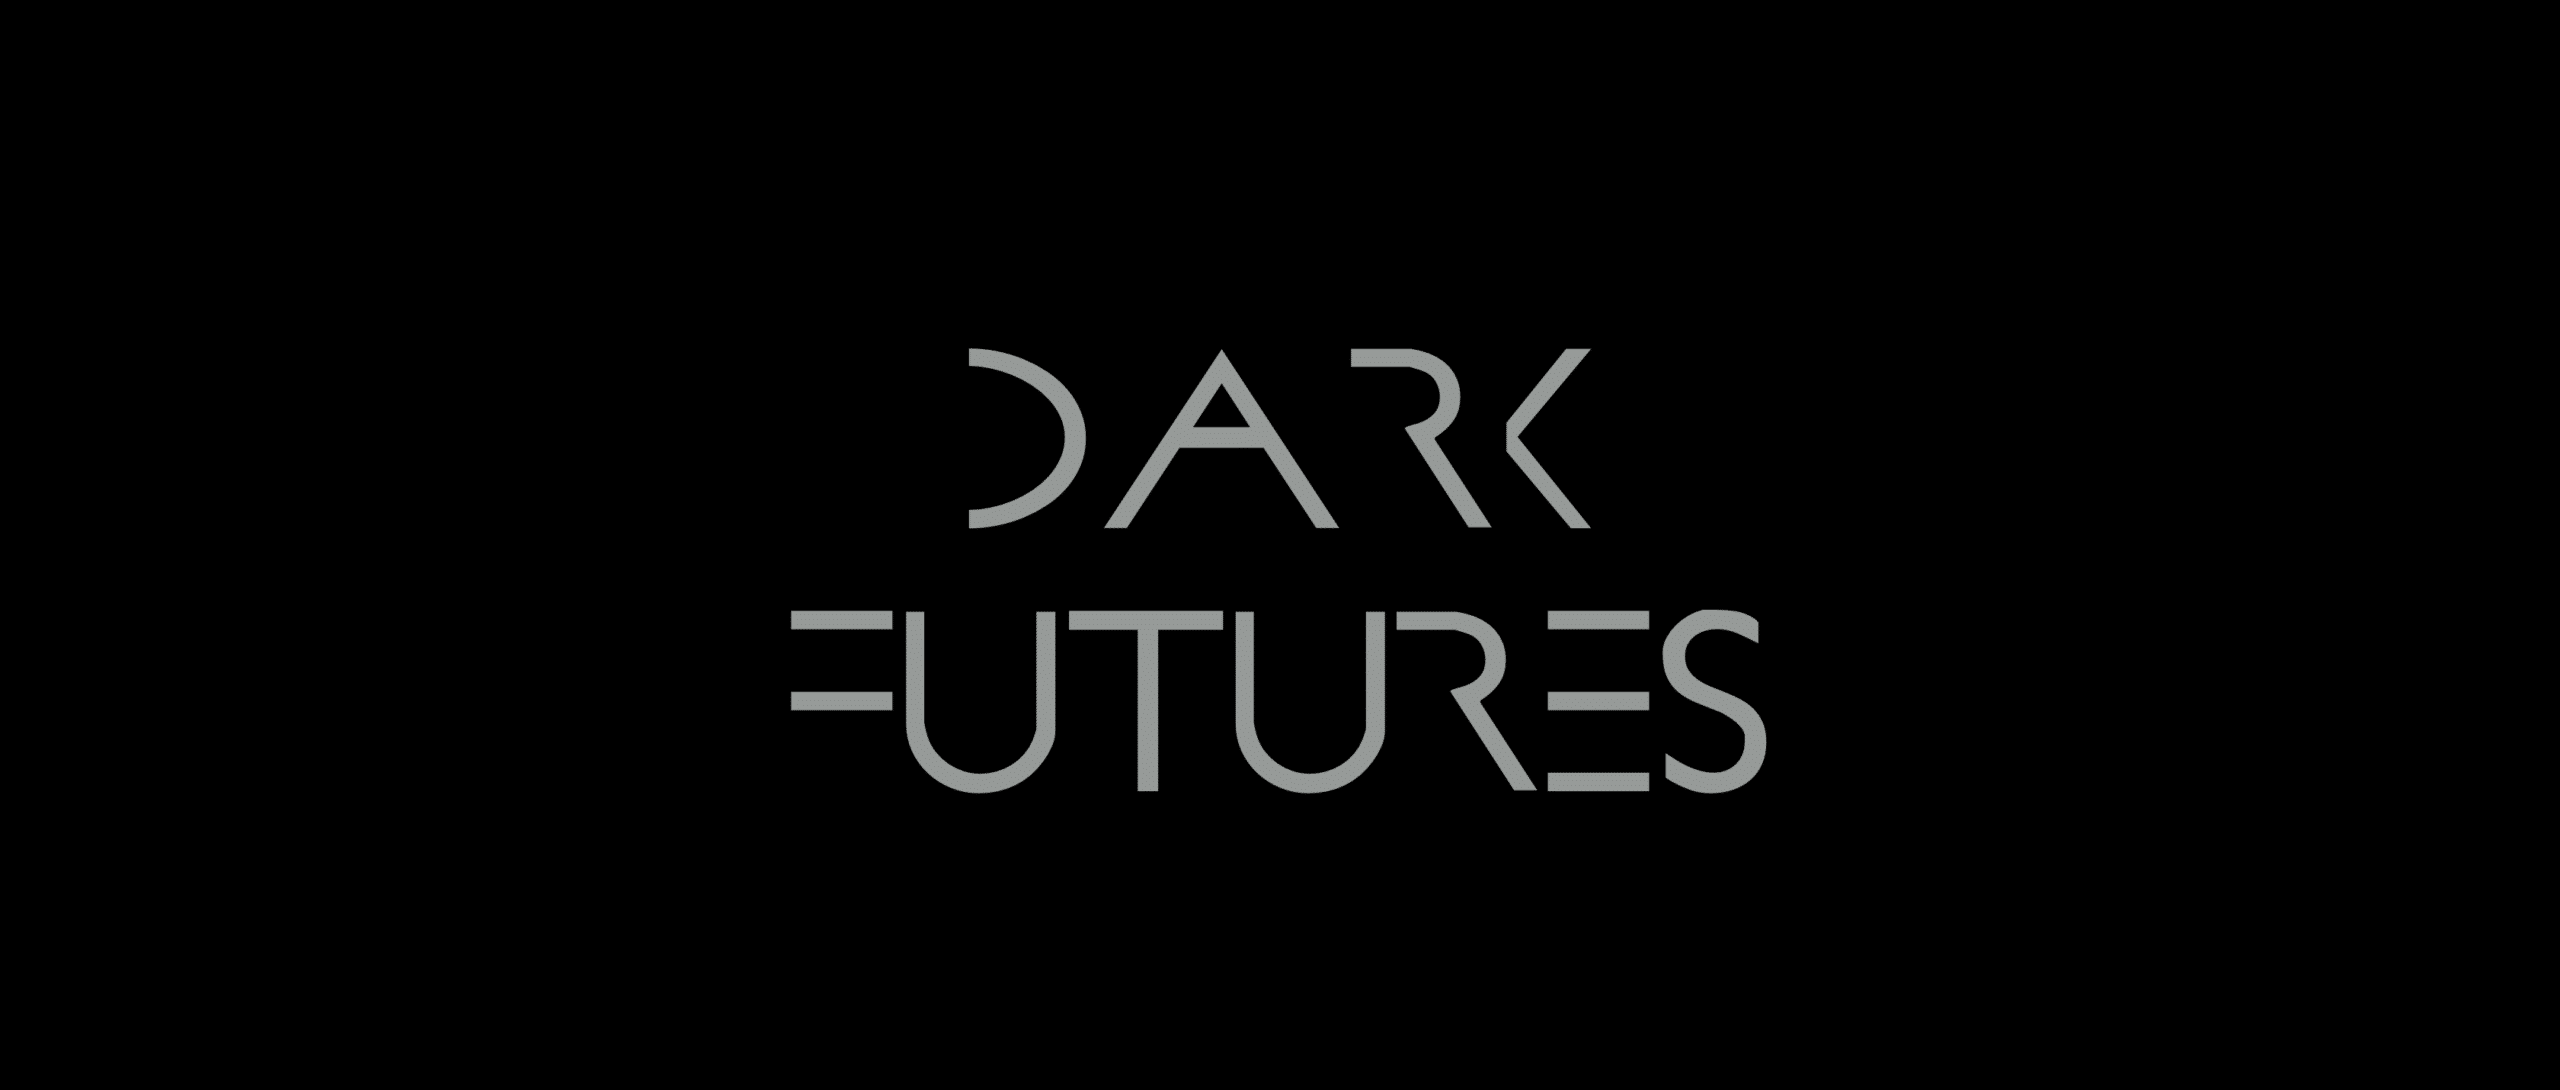 DARK FUTURES: Event on November 24th, 2015